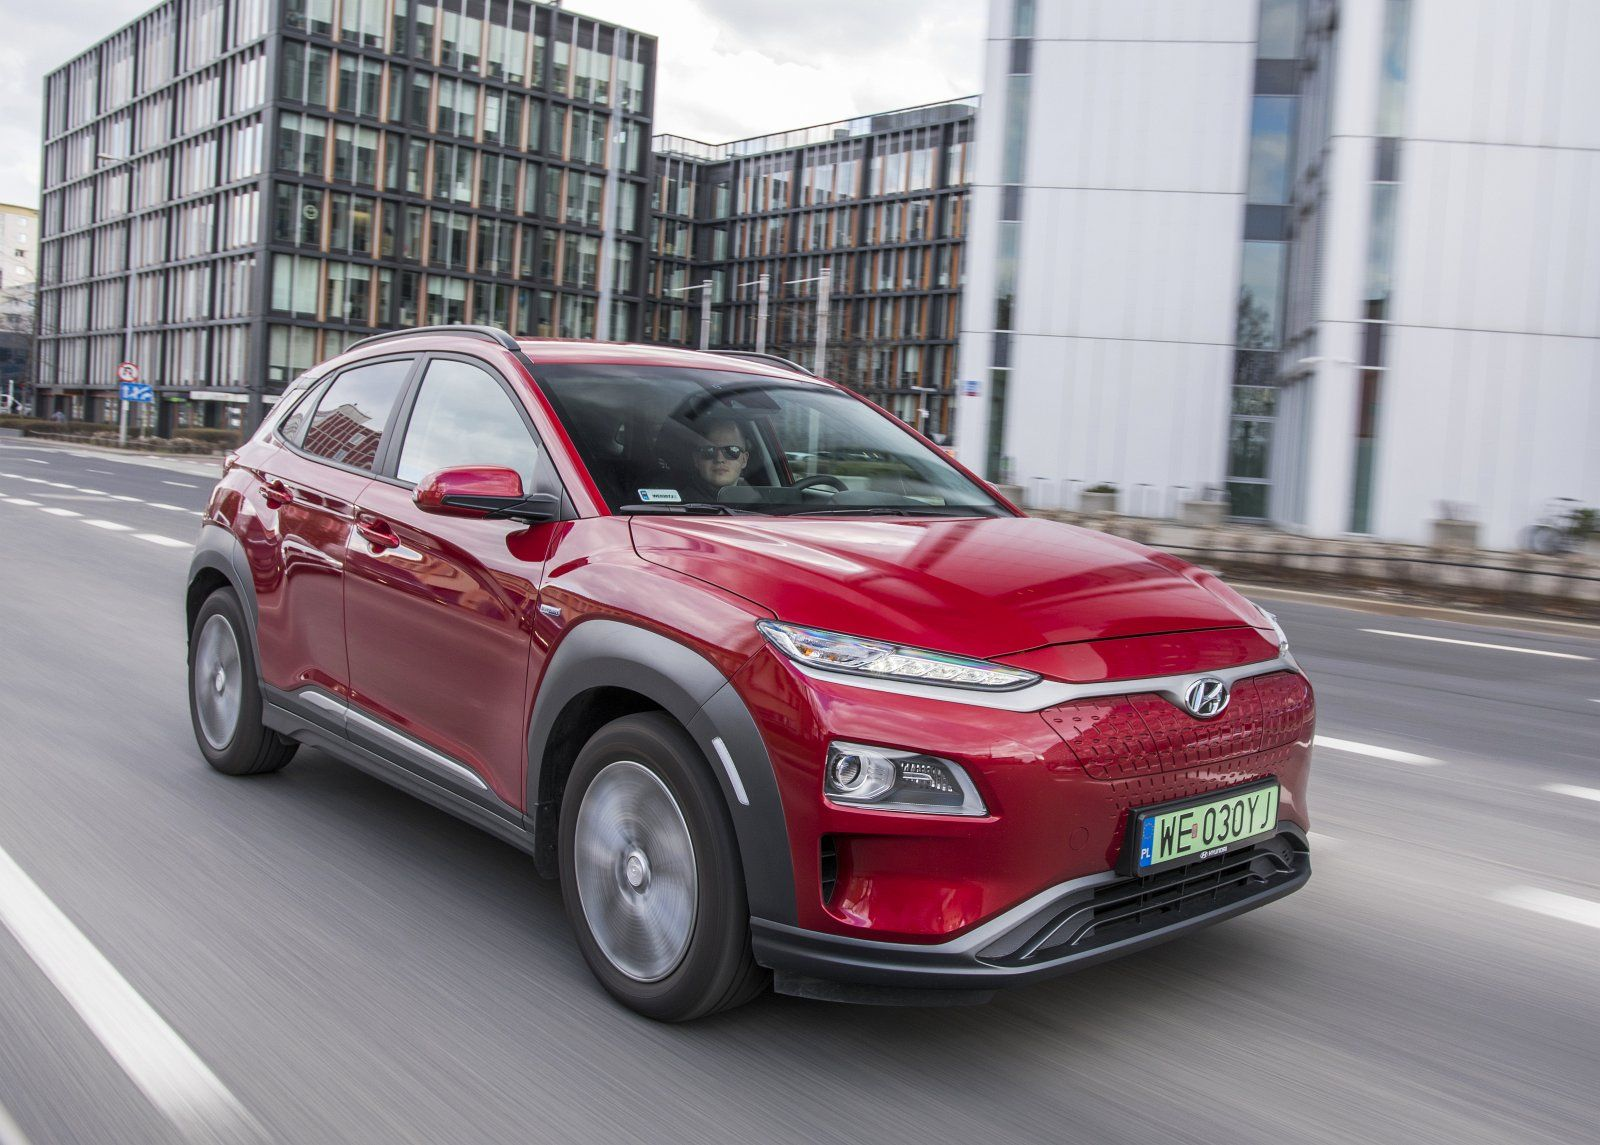 hyundai kona electric 64 kwh test 2020